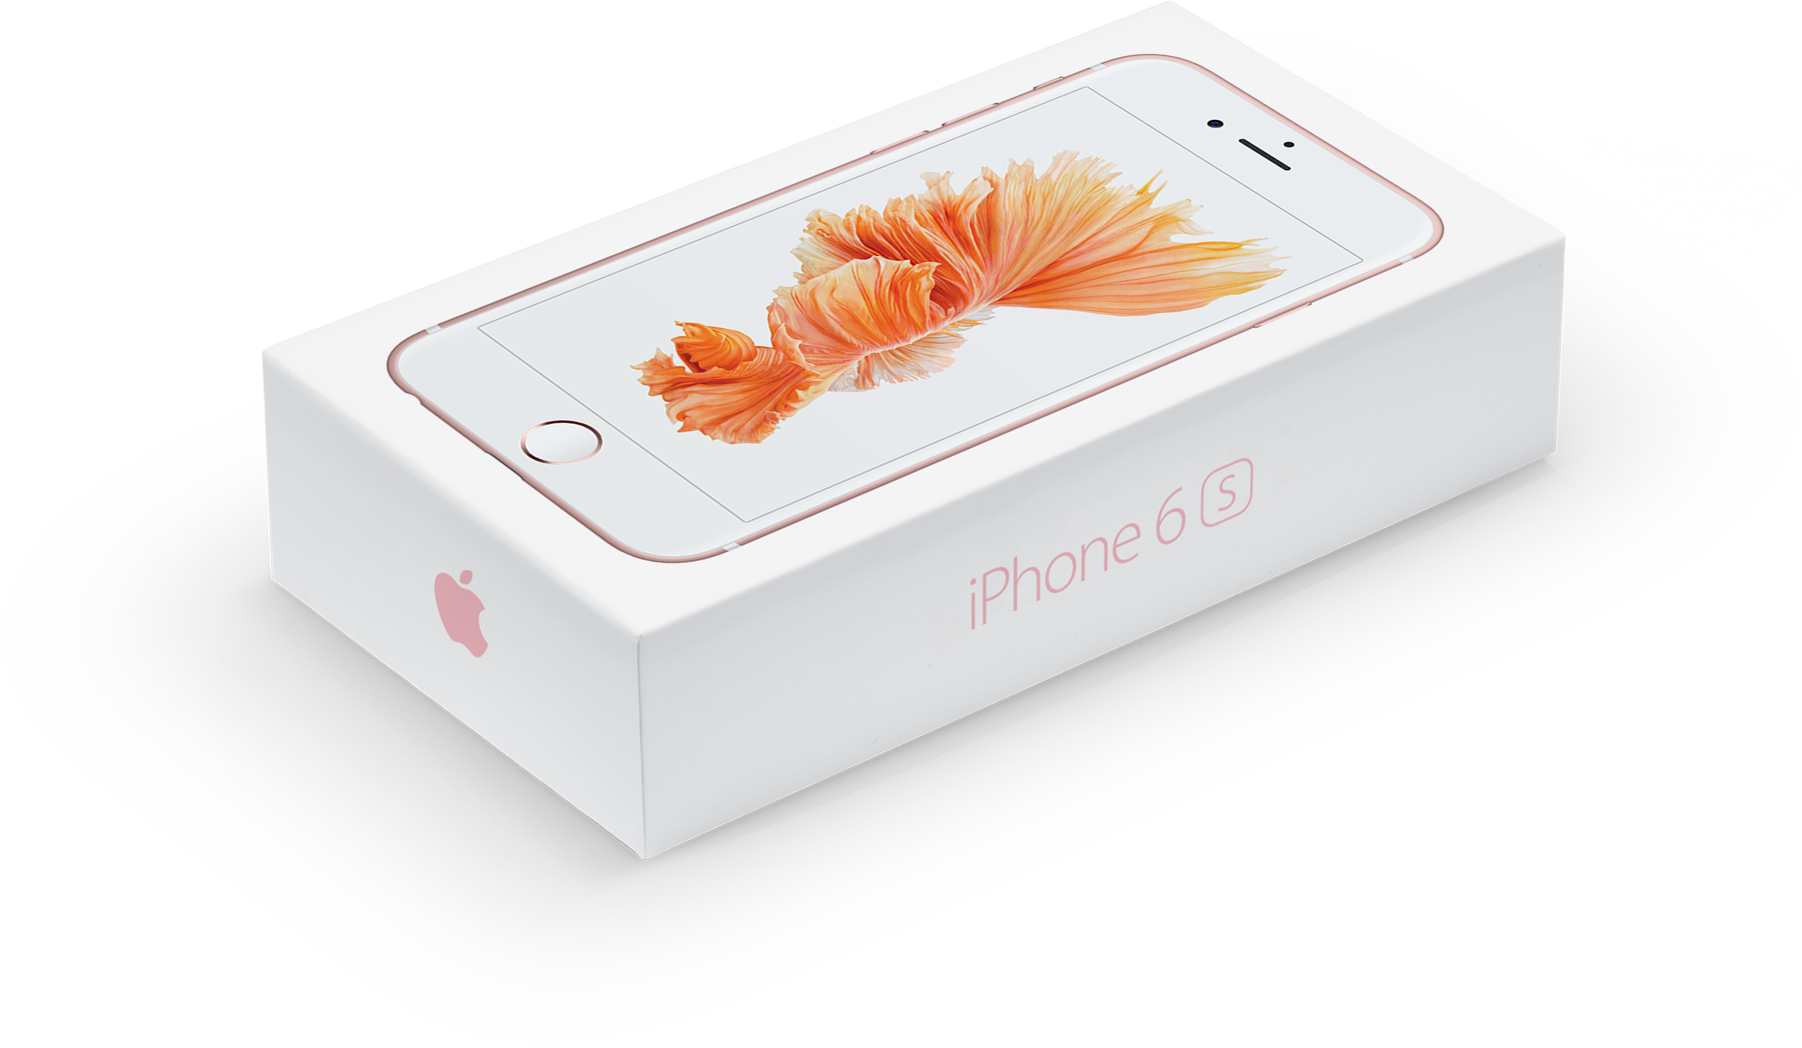 iphone-6s-rose-gold-packaging.png